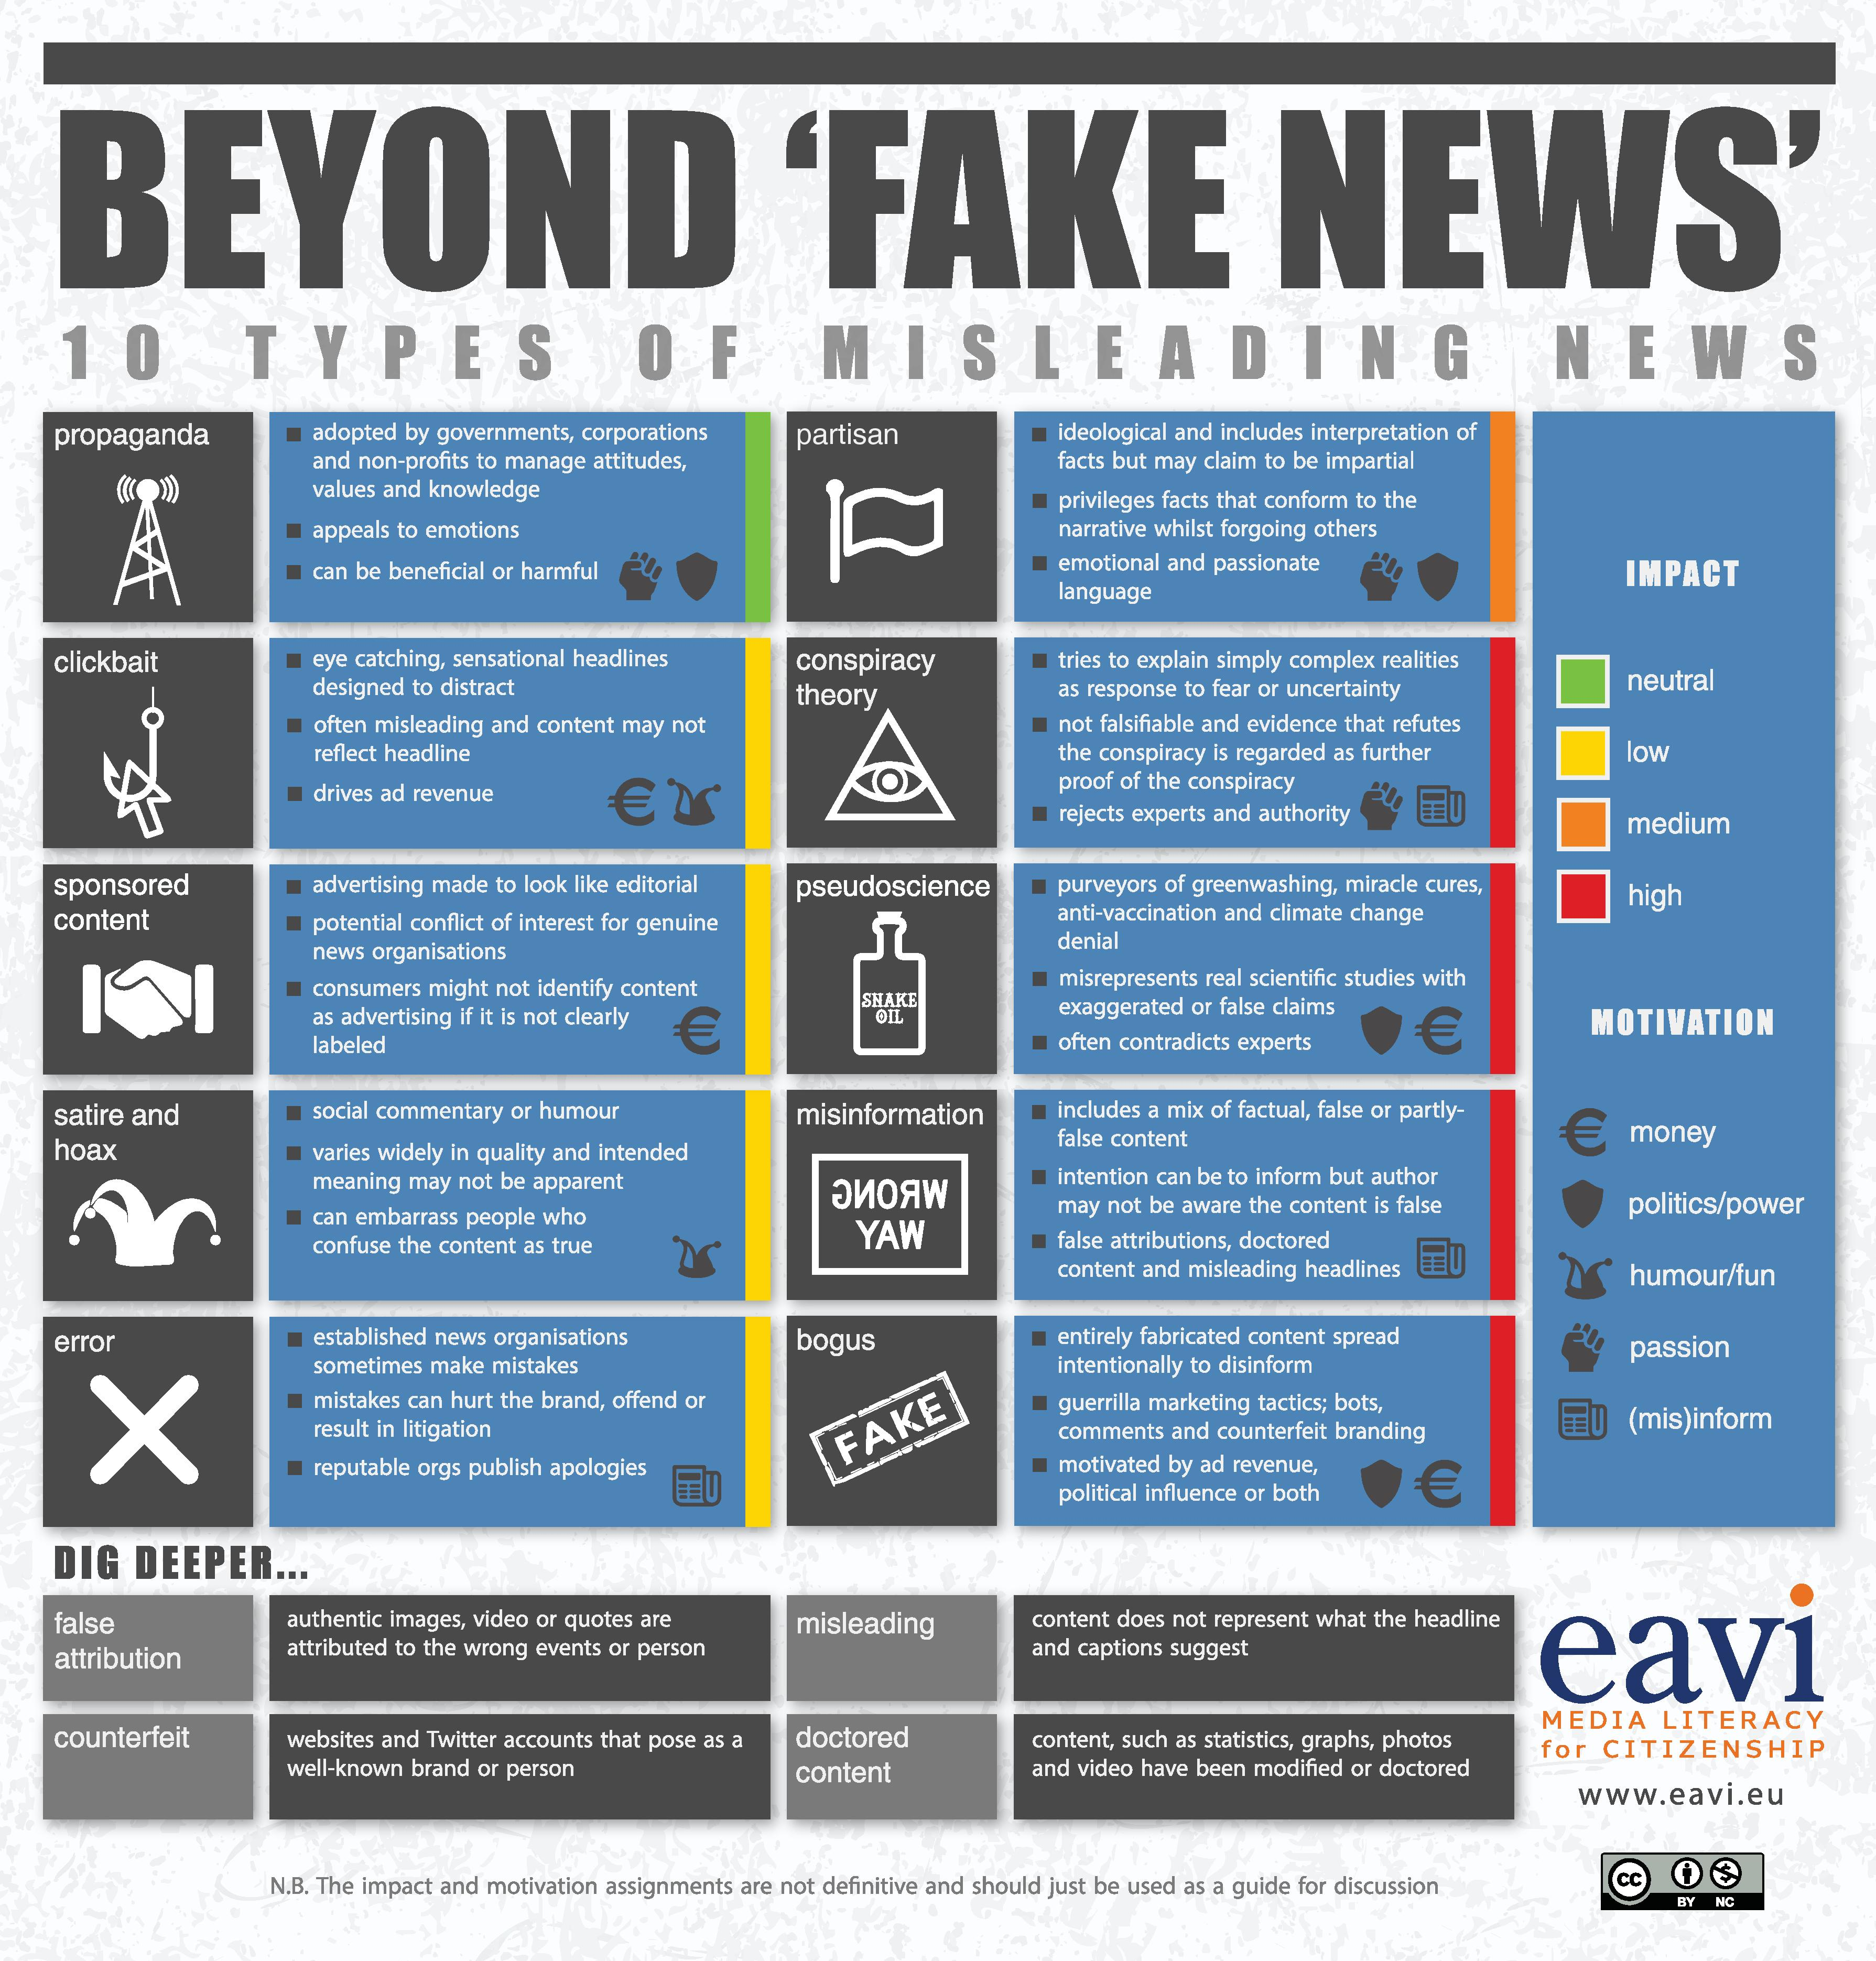 Beyond 'Fake News': 10 Types of Misleading News infographic infographic